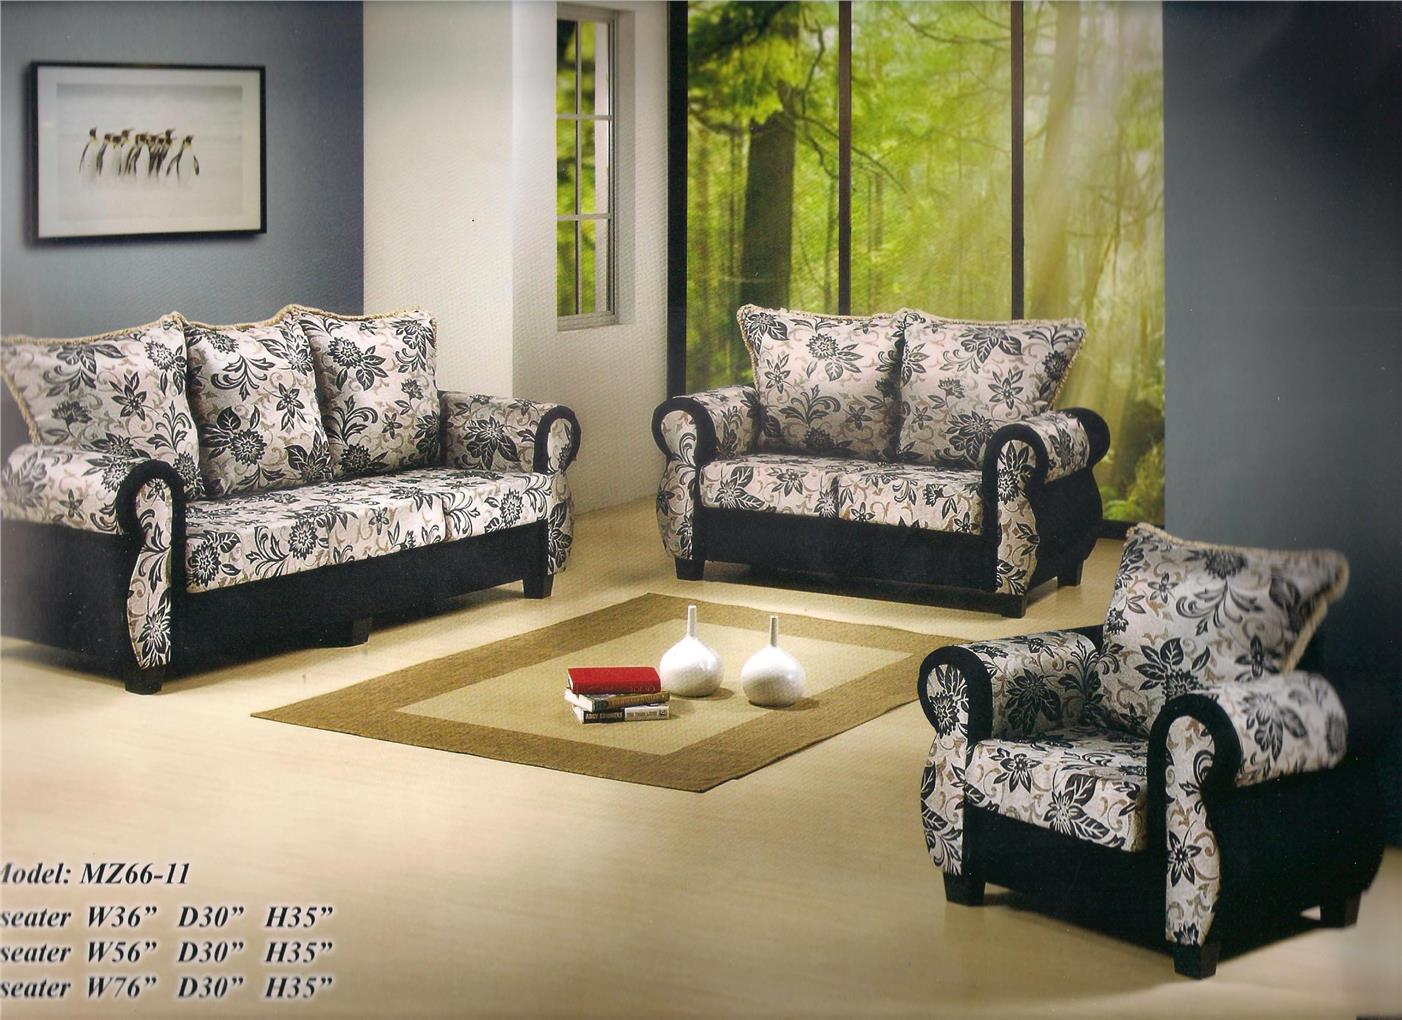 NiceHome low price 3+2+1 seater sofa set Promo model - MZ66-11